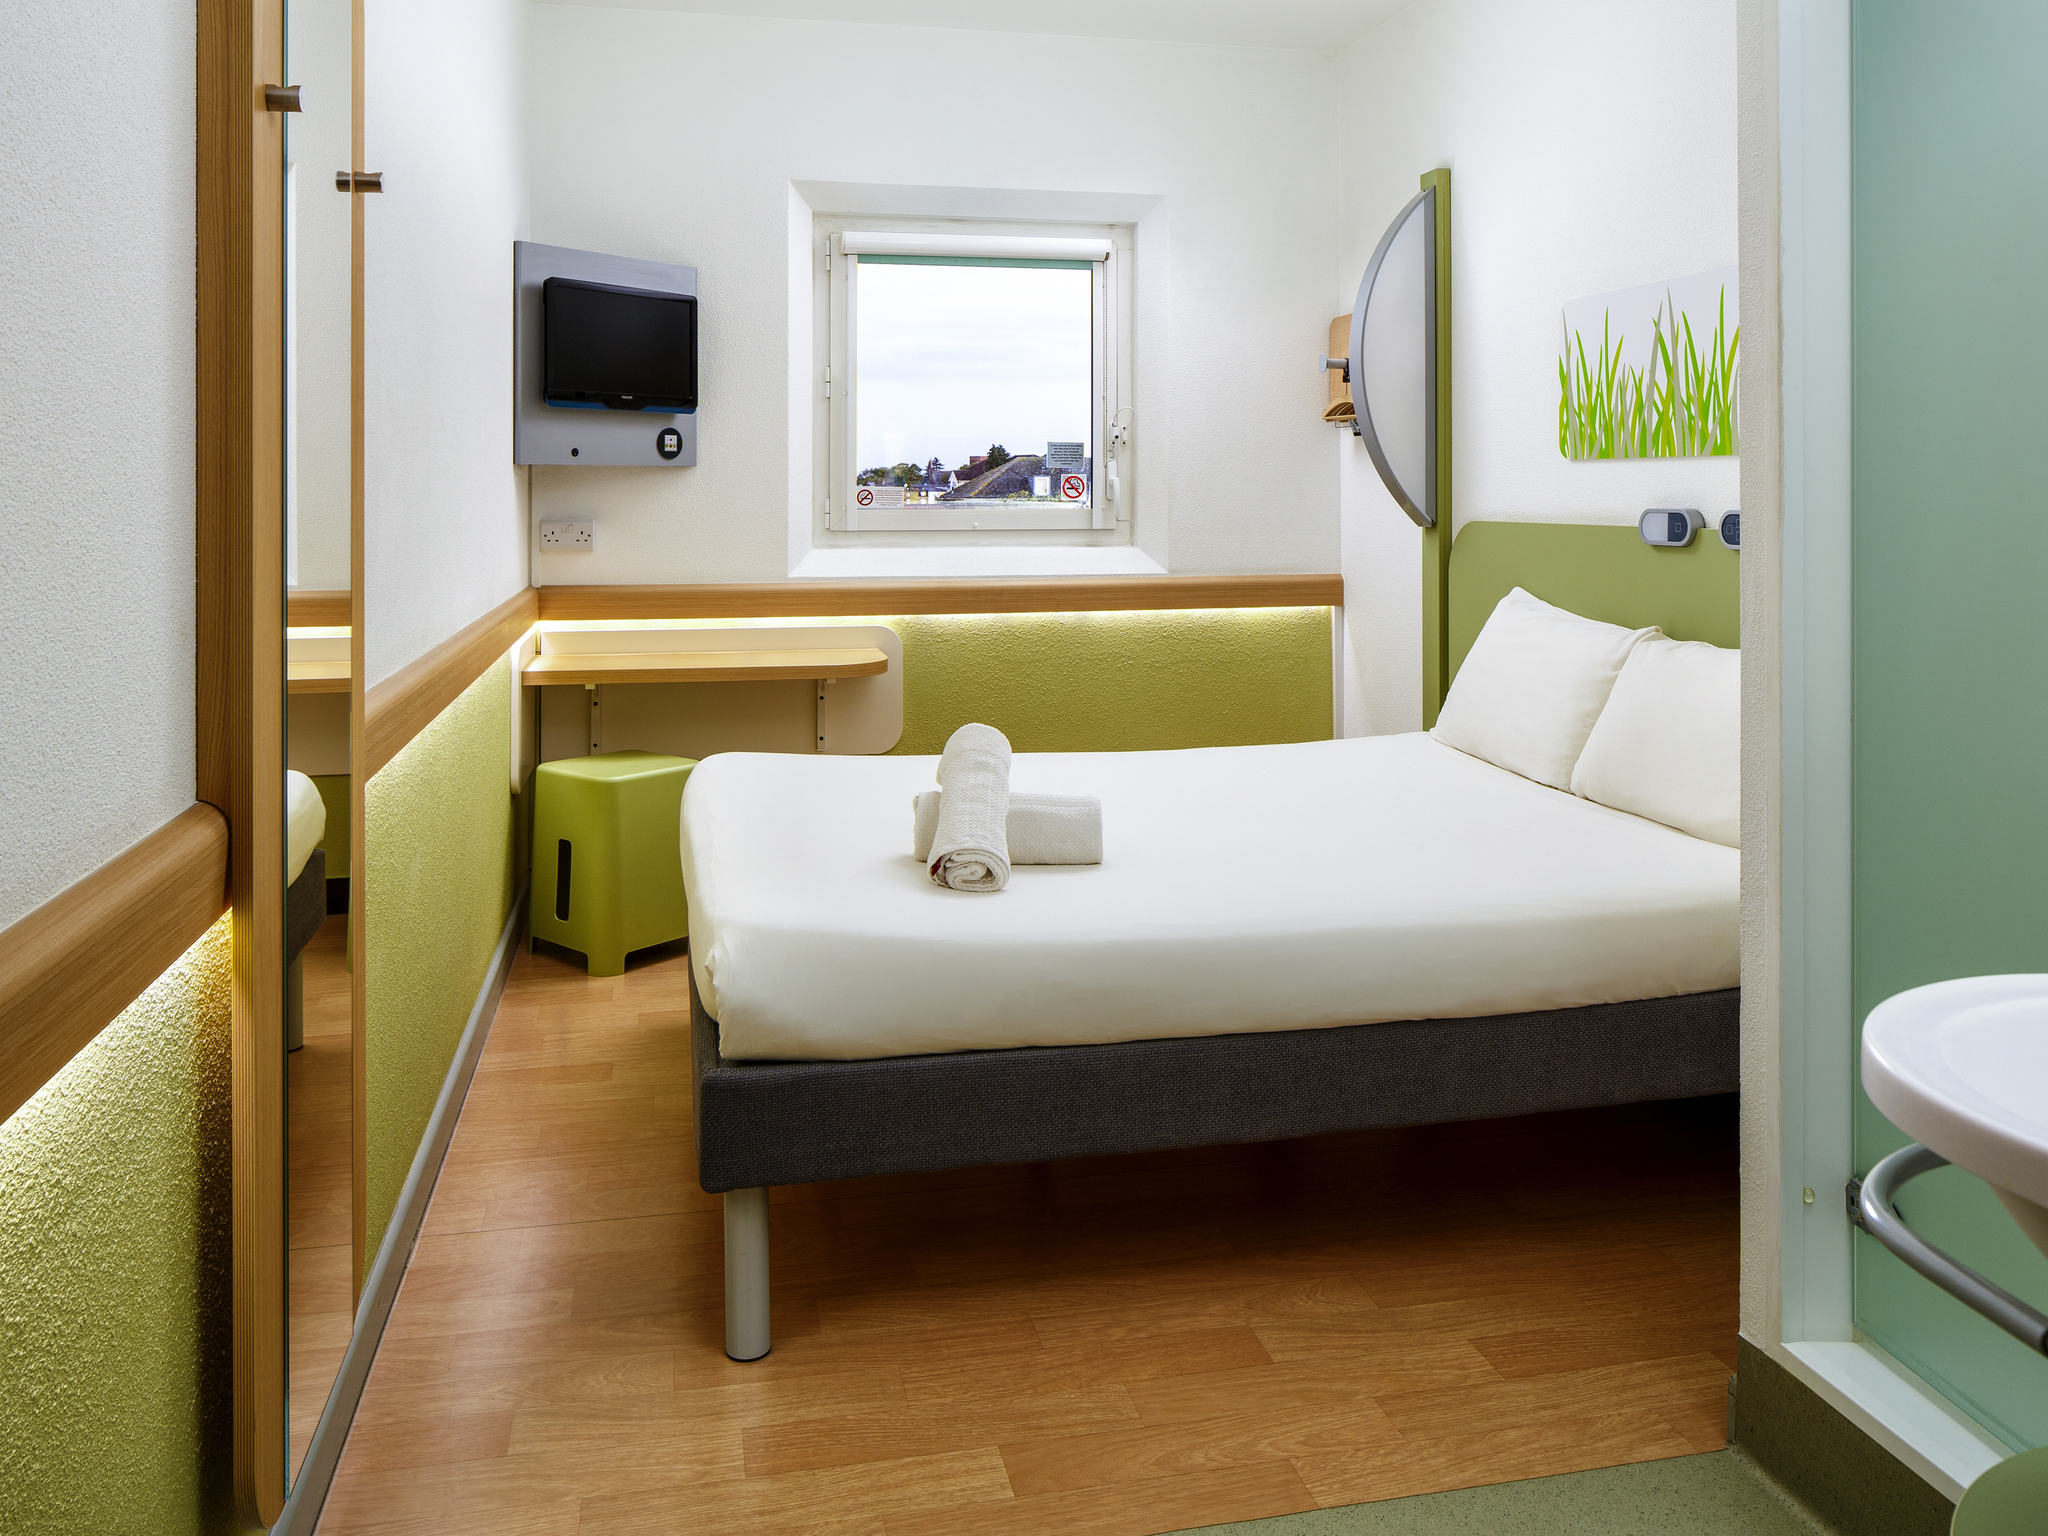 Manchester United Wallpaper For Bedroom Ibis Budget Manchester Salford Hotel In Manchester